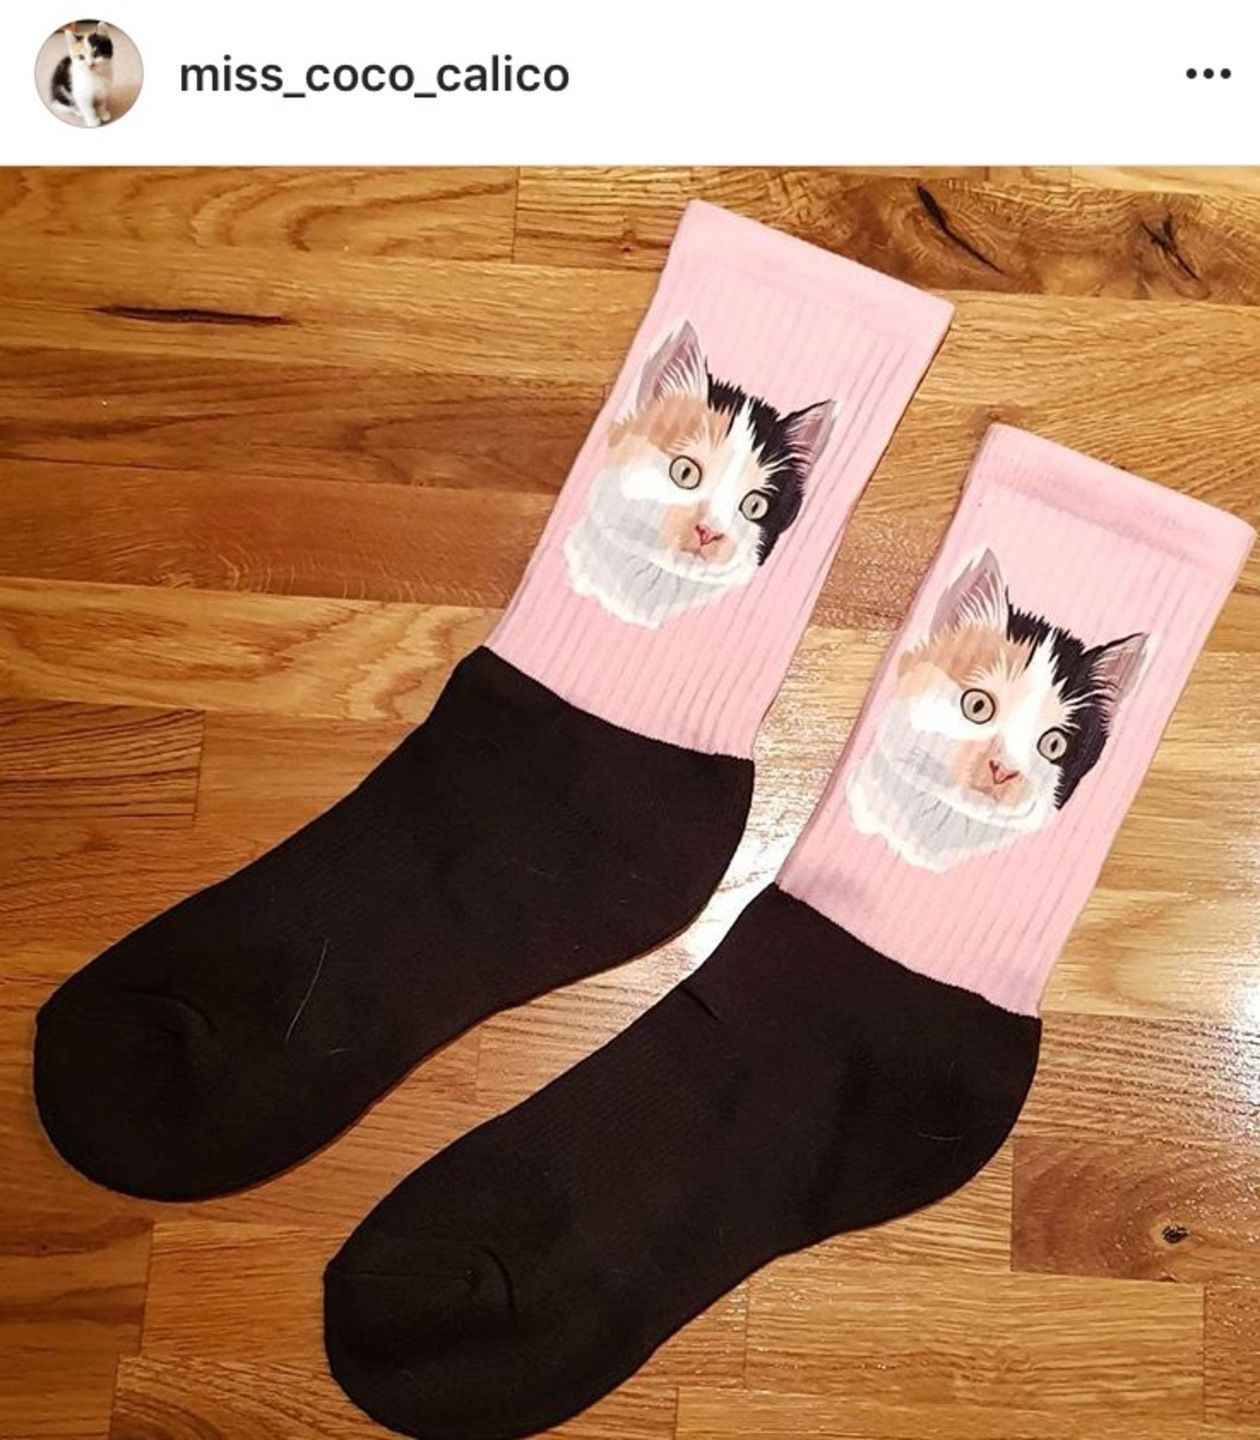 Personalized Your Pupper On a Super Awesome Socks ��   Make Yours @ https://t.co/CtqjL6fOat �� https://t.co/edk51ybI87